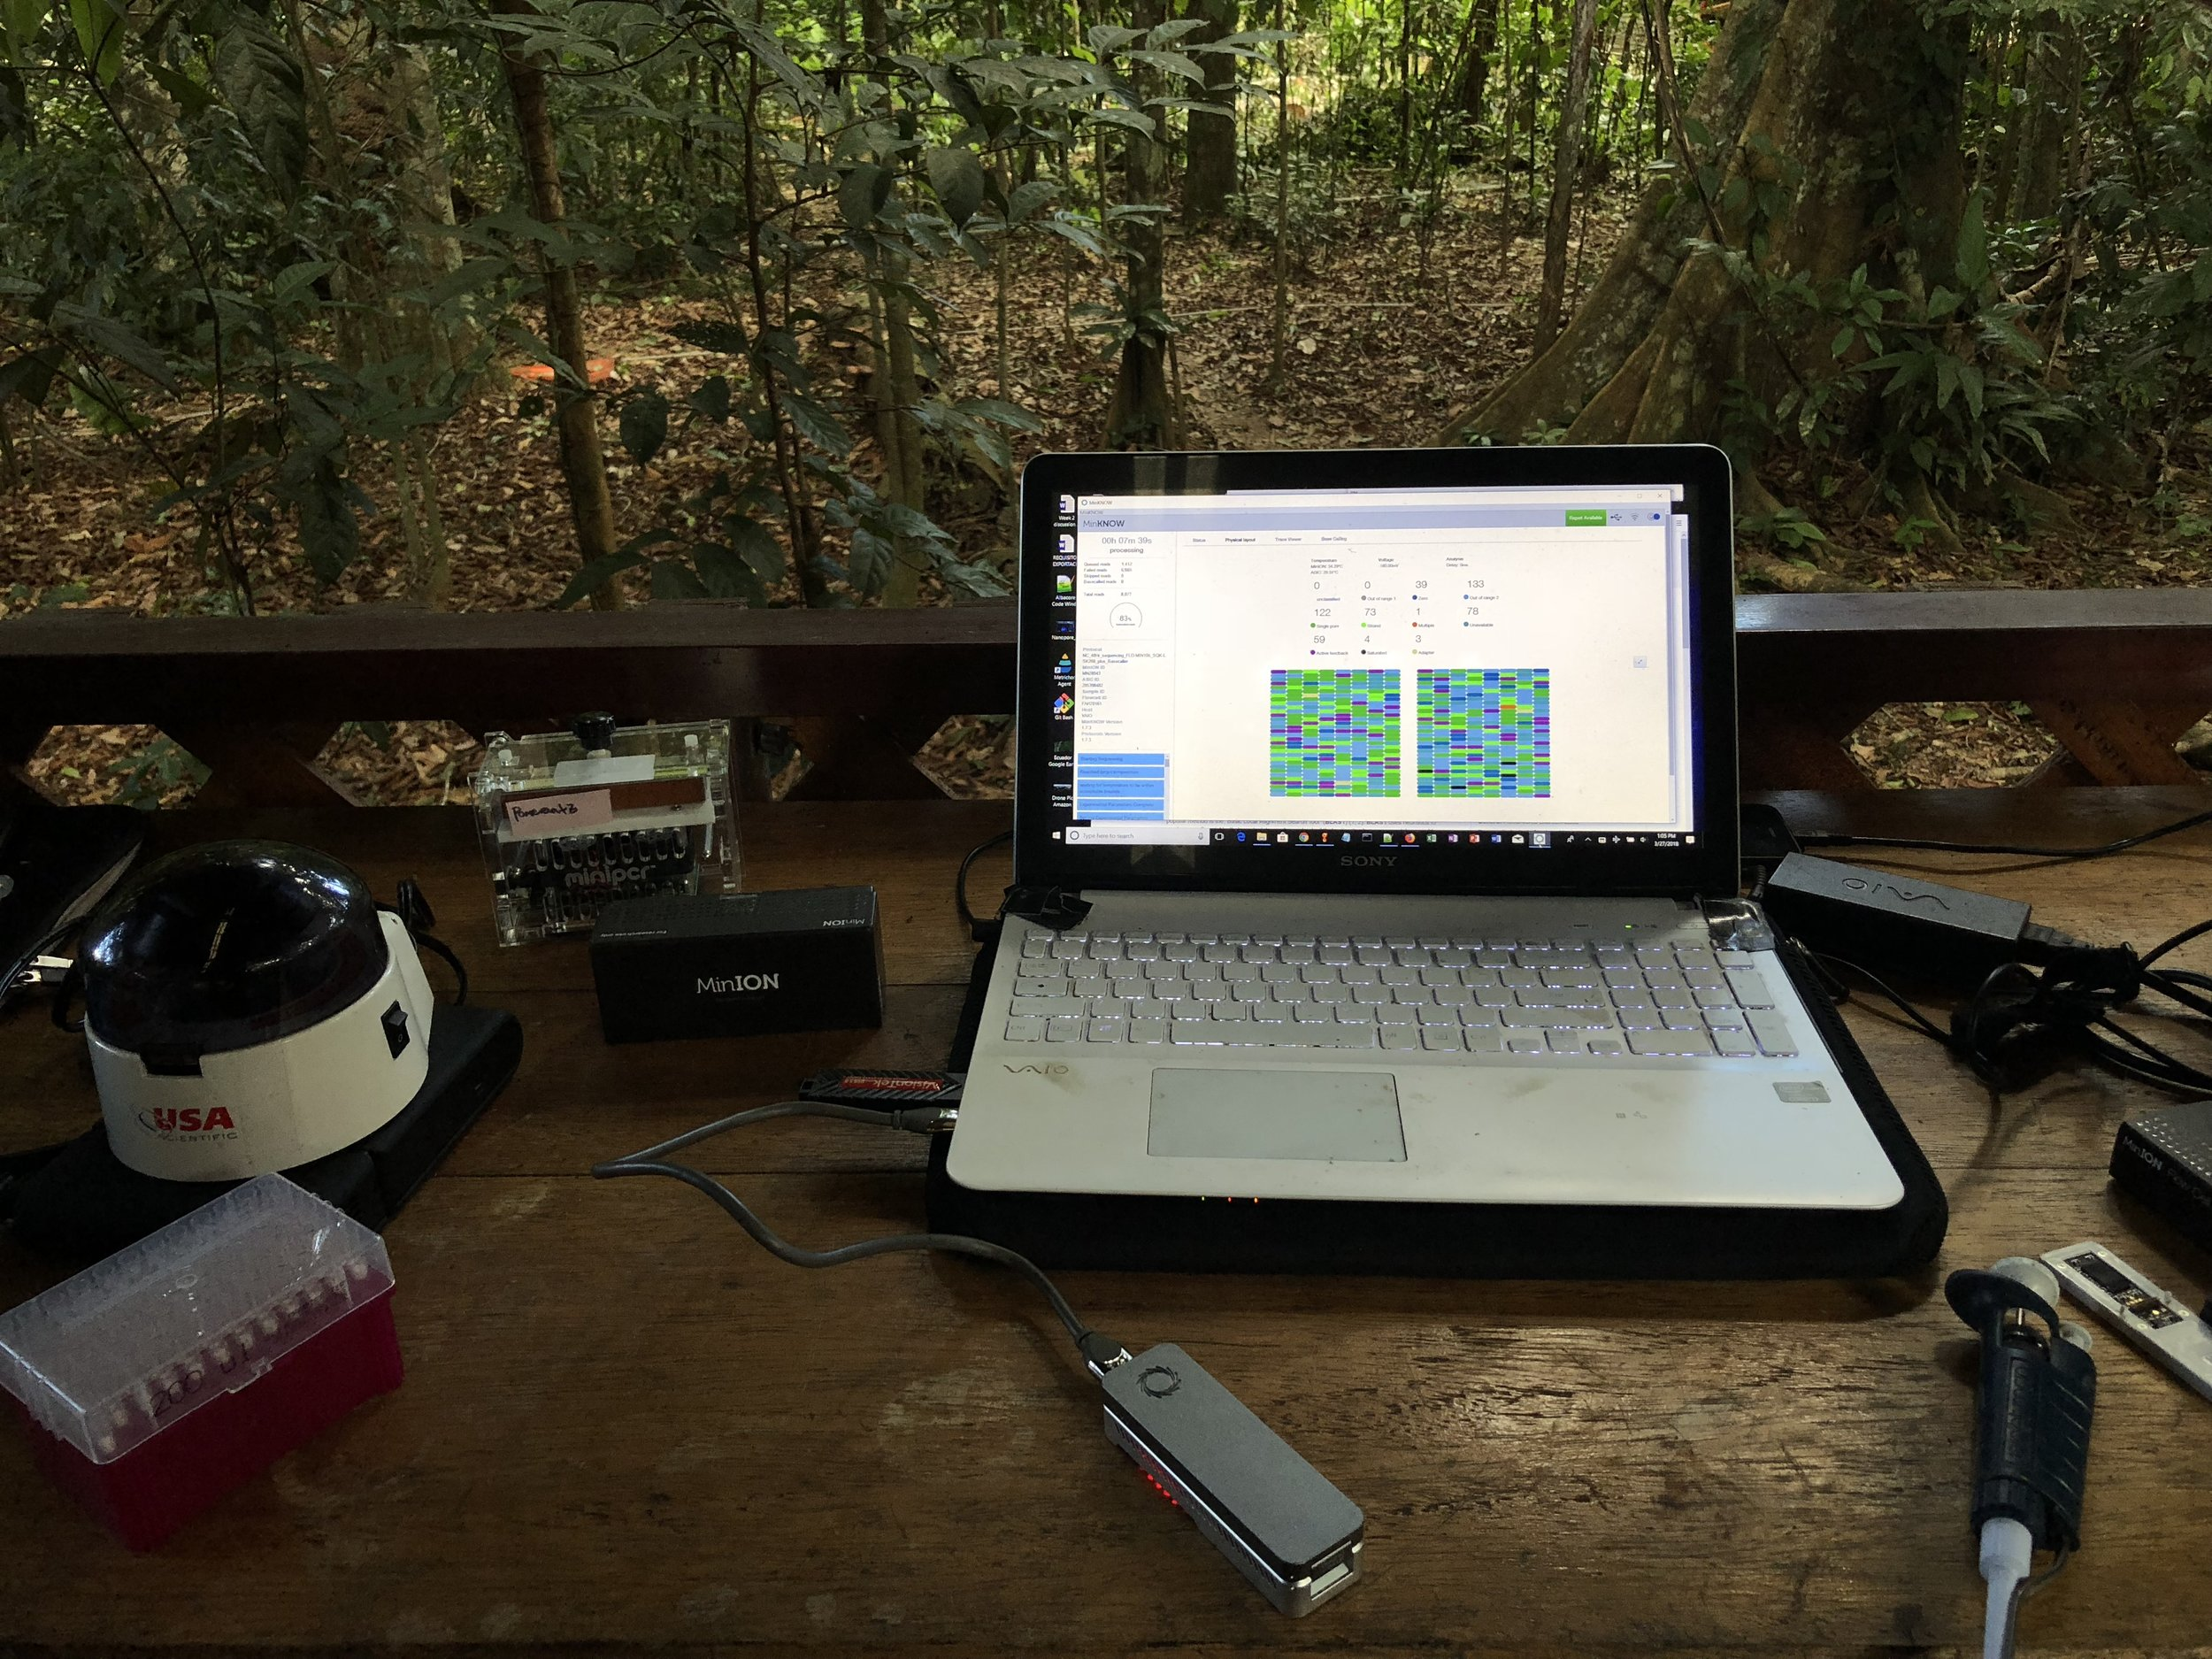 My portable lab setup that I recently deployed in Peru to sequence long stretches of ribosomal DNA from plants and arthropods.